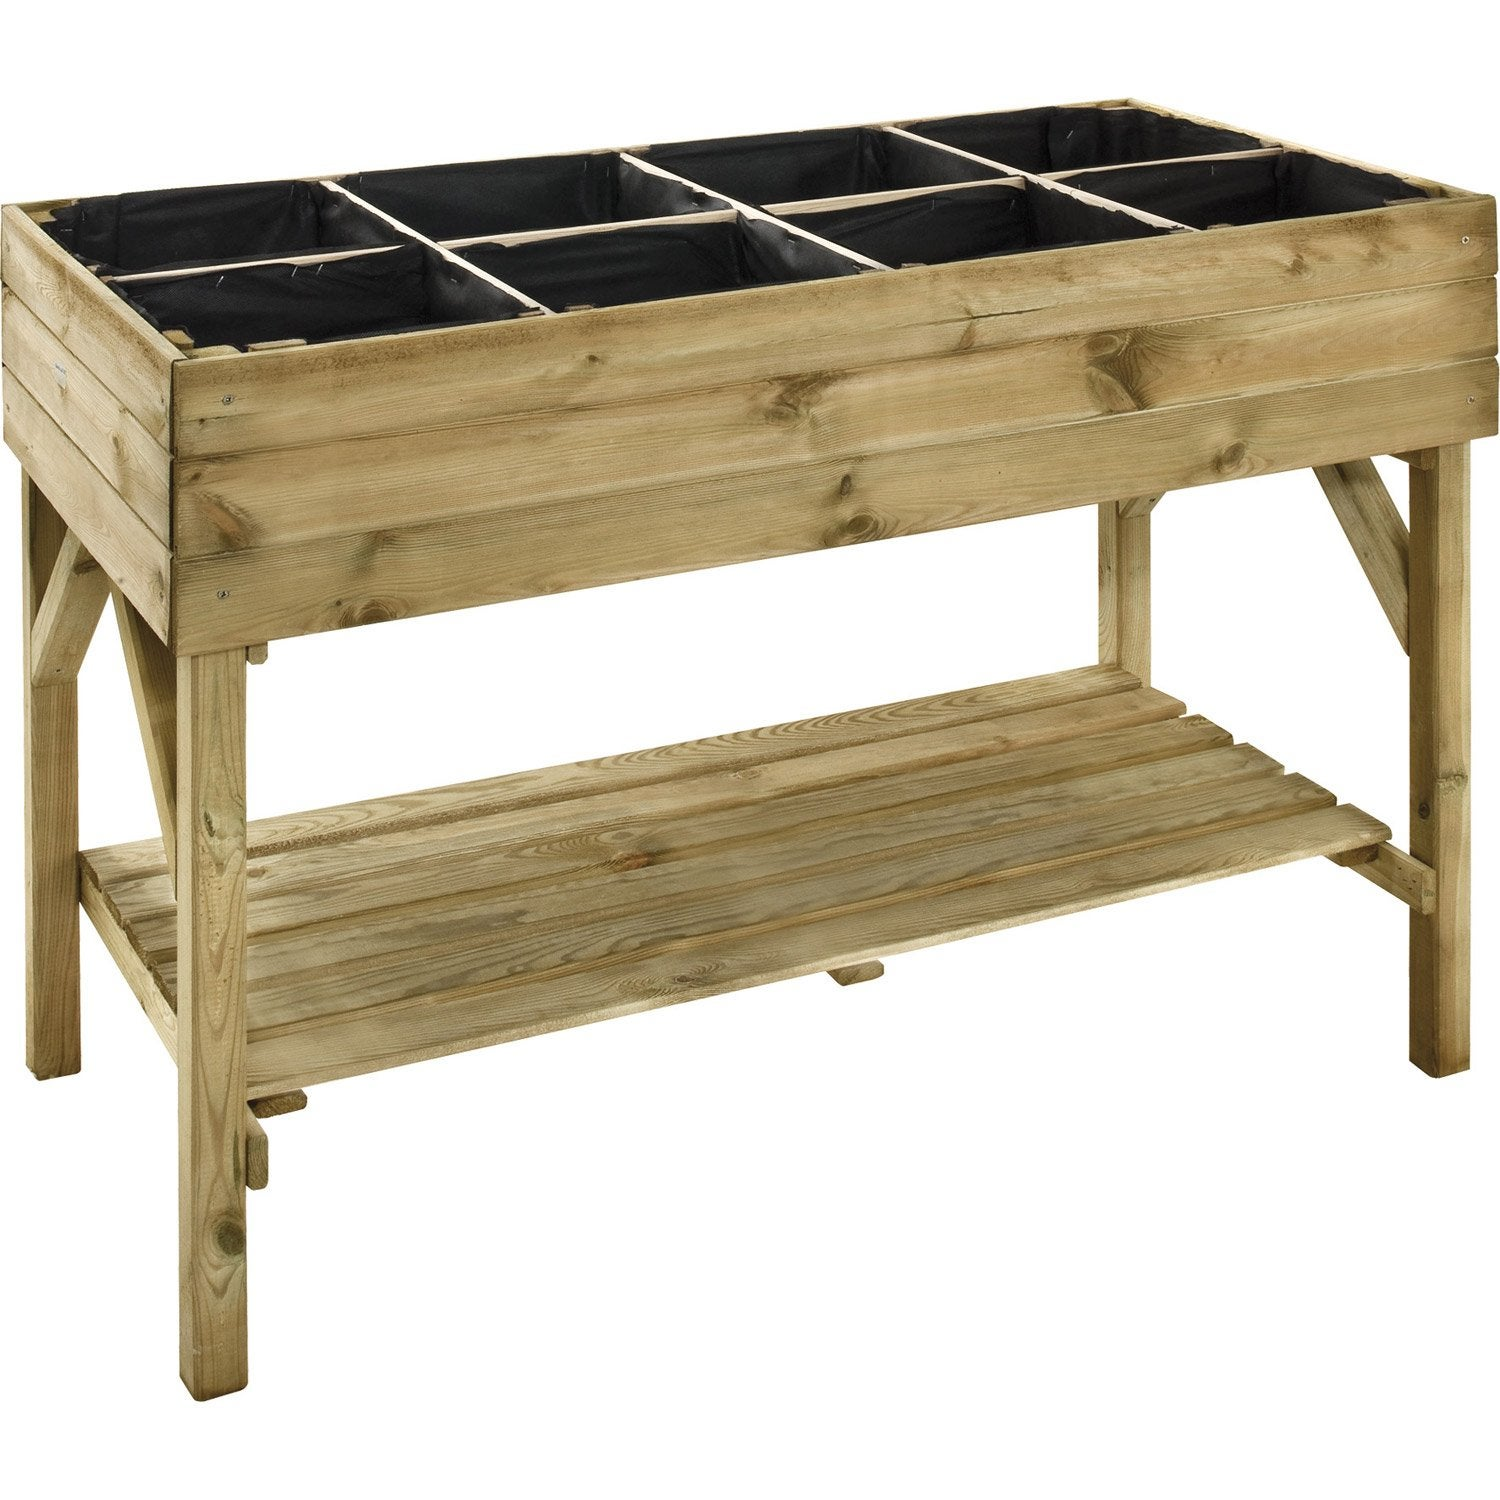 potager sur pieds gariguette x x cm leroy merlin. Black Bedroom Furniture Sets. Home Design Ideas